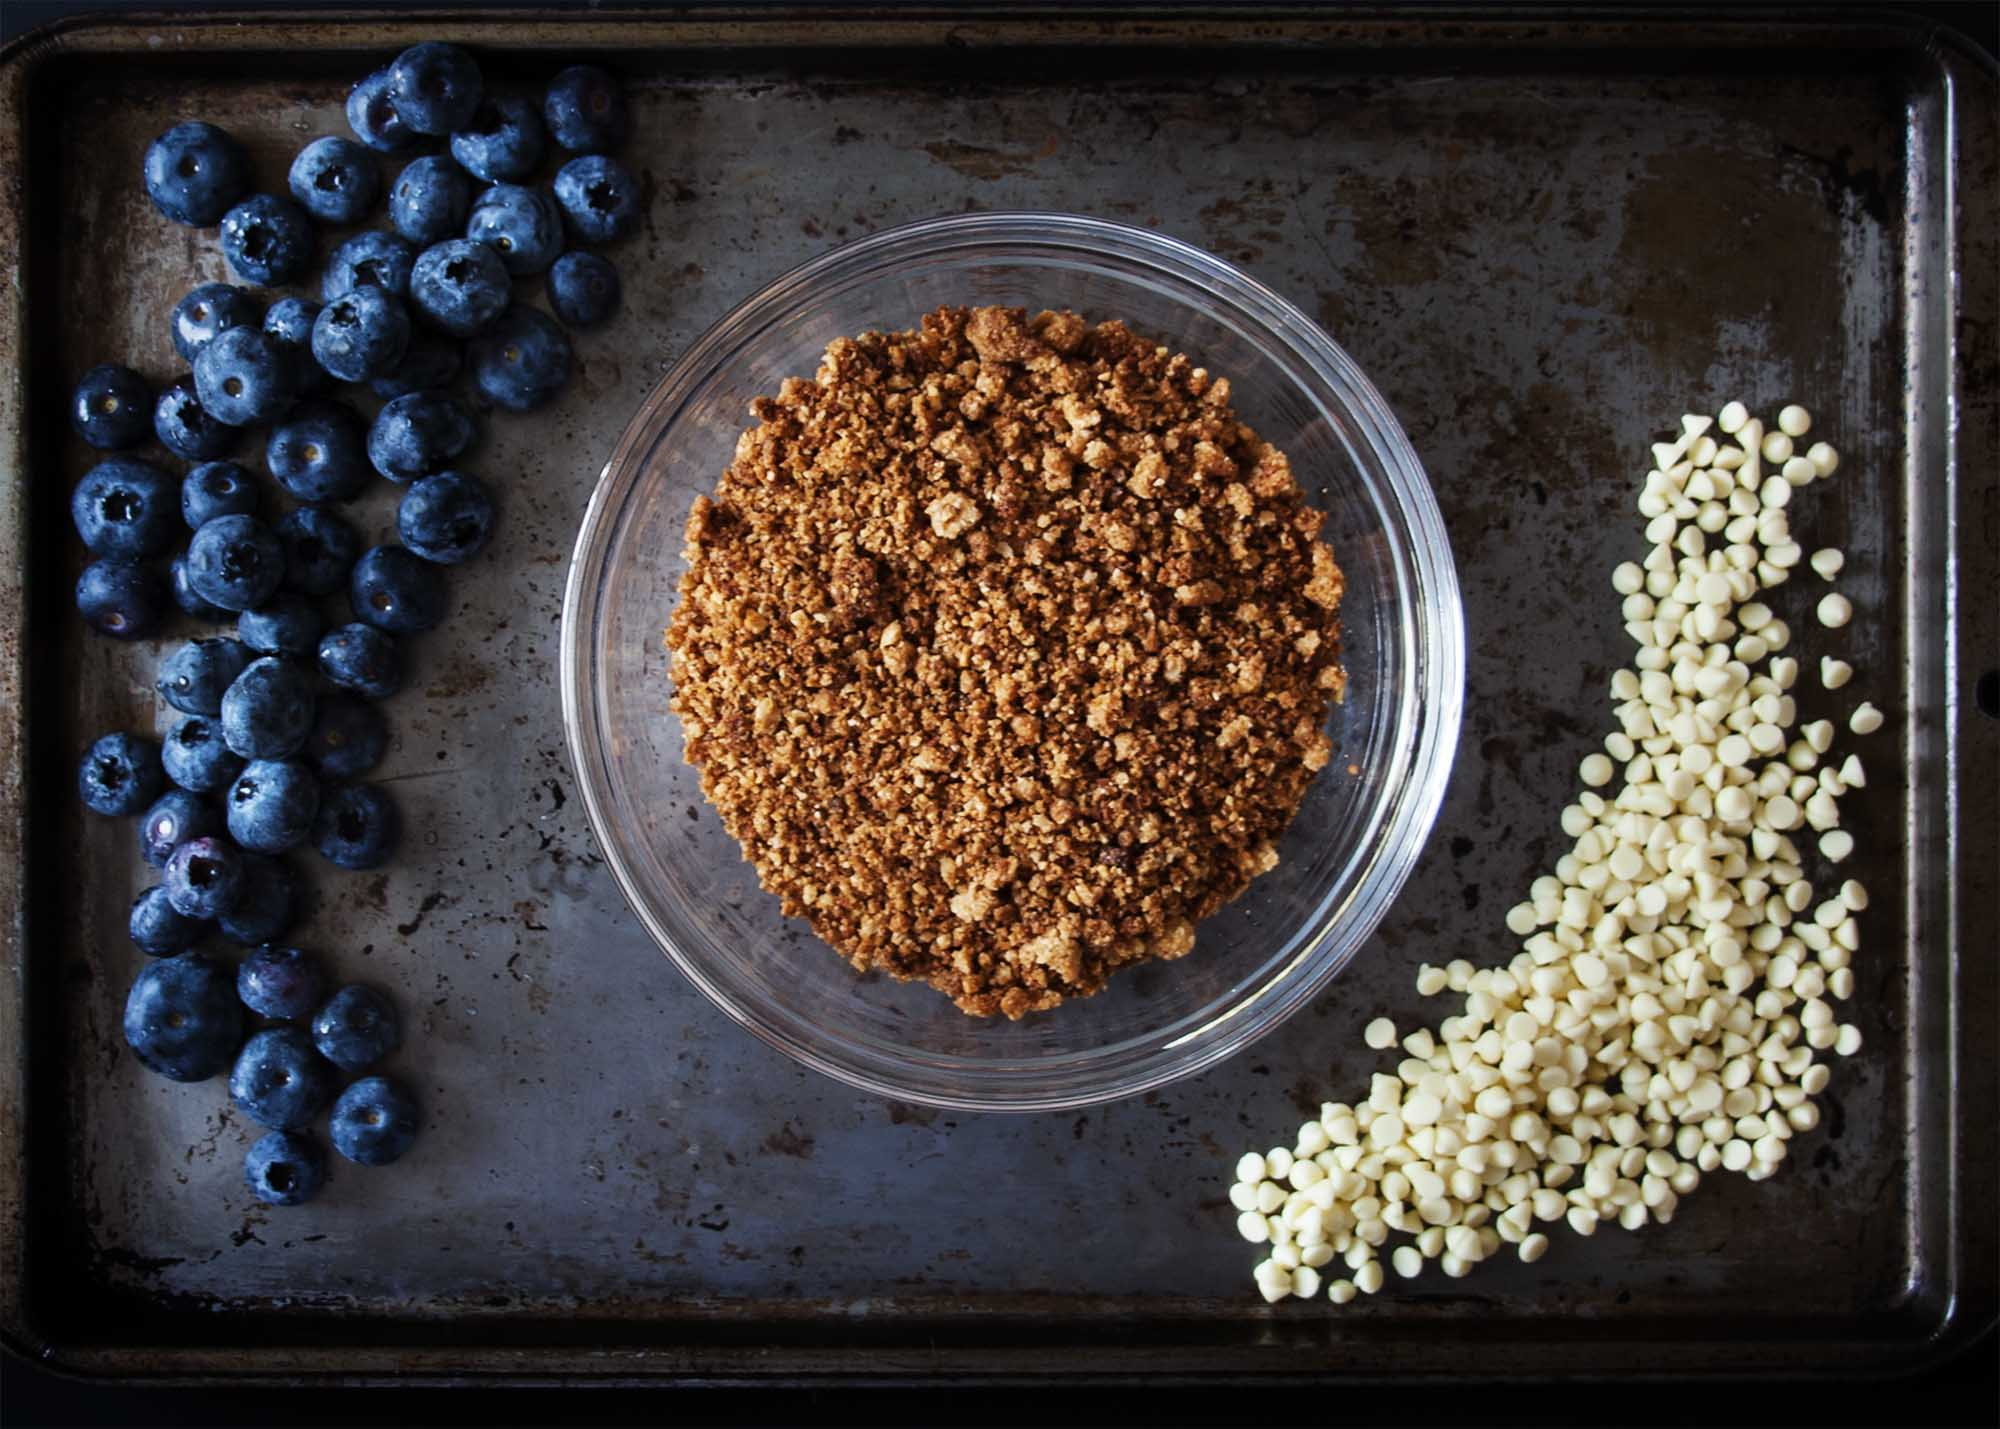 Blueberries, granola, and white chocolate arranged on a baking sheet.